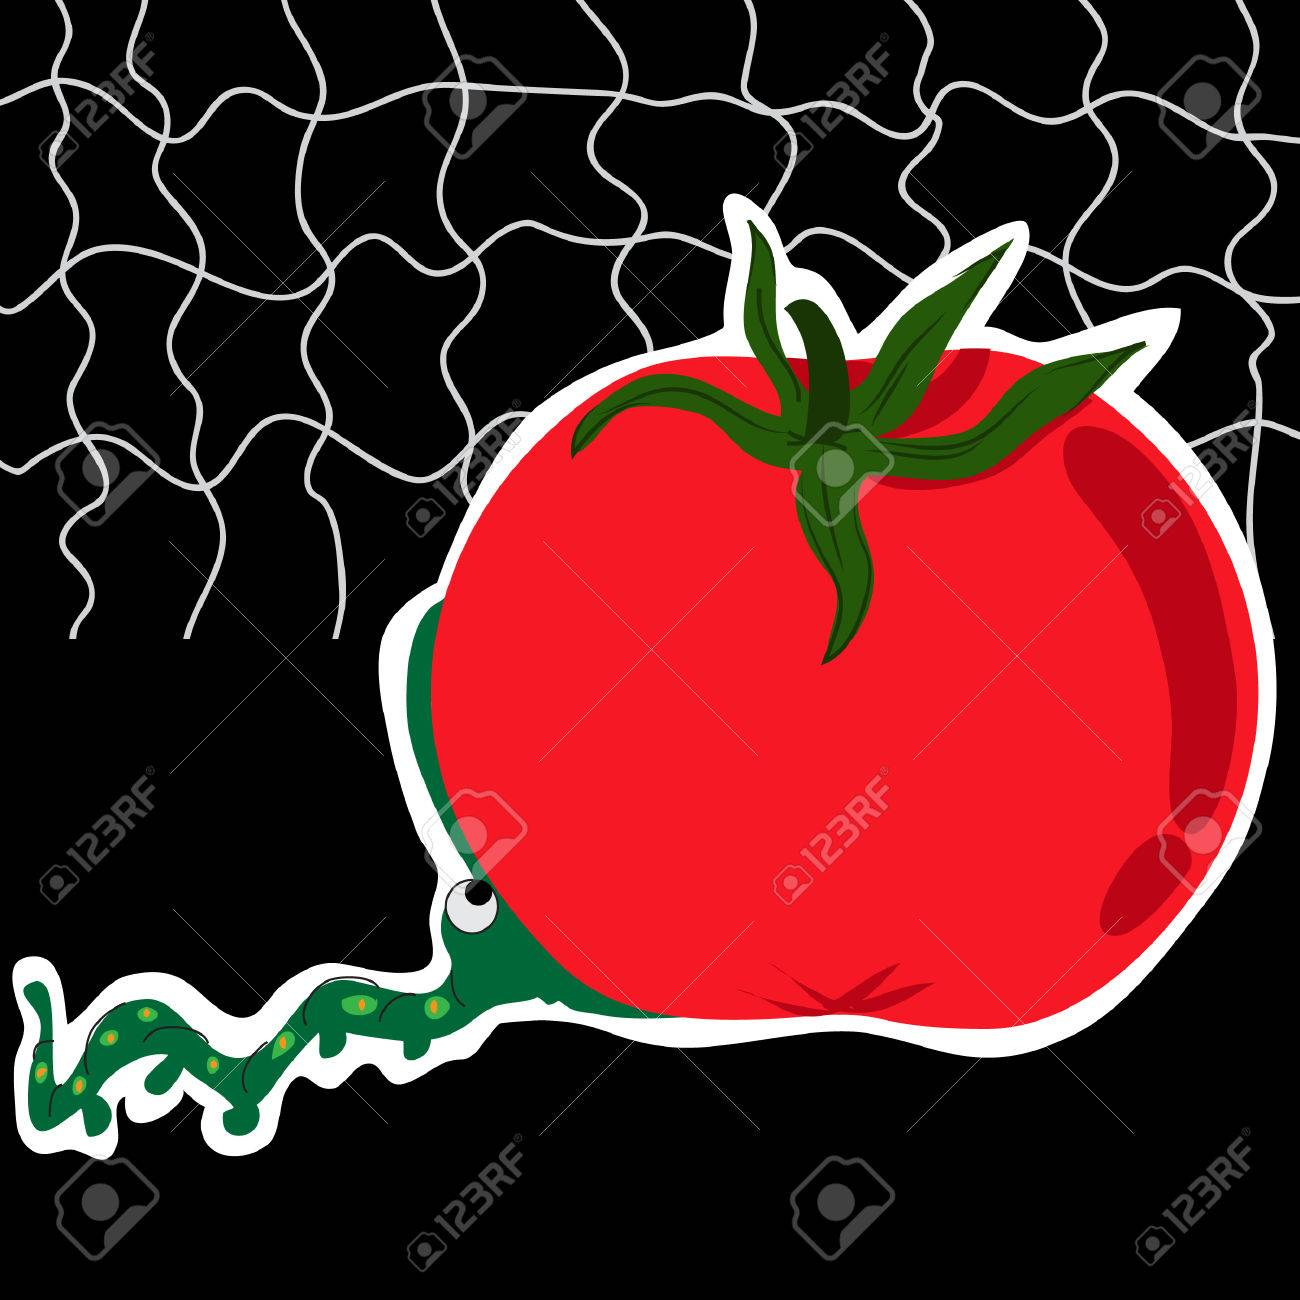 Background image too big - An Adorable Worm Attempting To Chew The Too Big Tomato On A Black Background